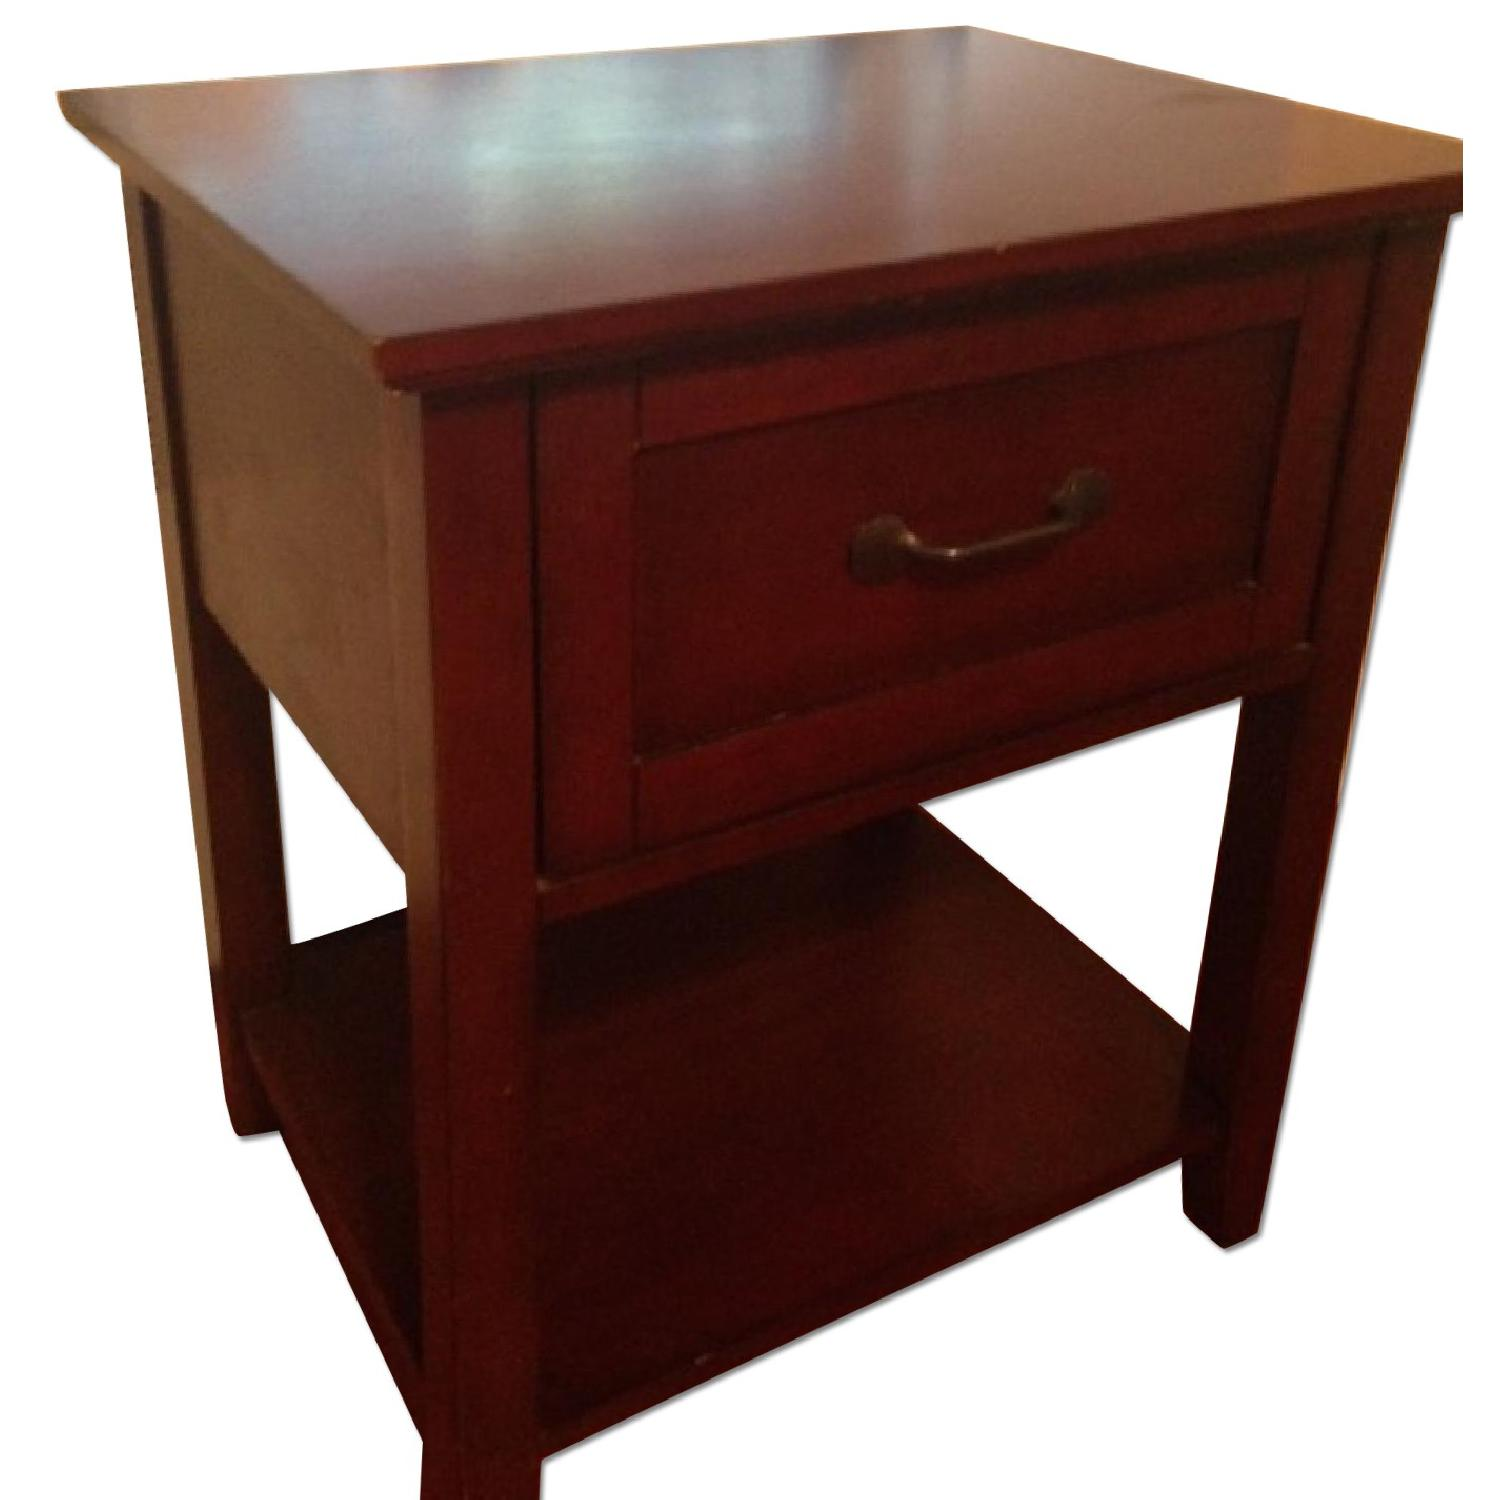 Pottery Barn Stratton Bedside Table - image-0